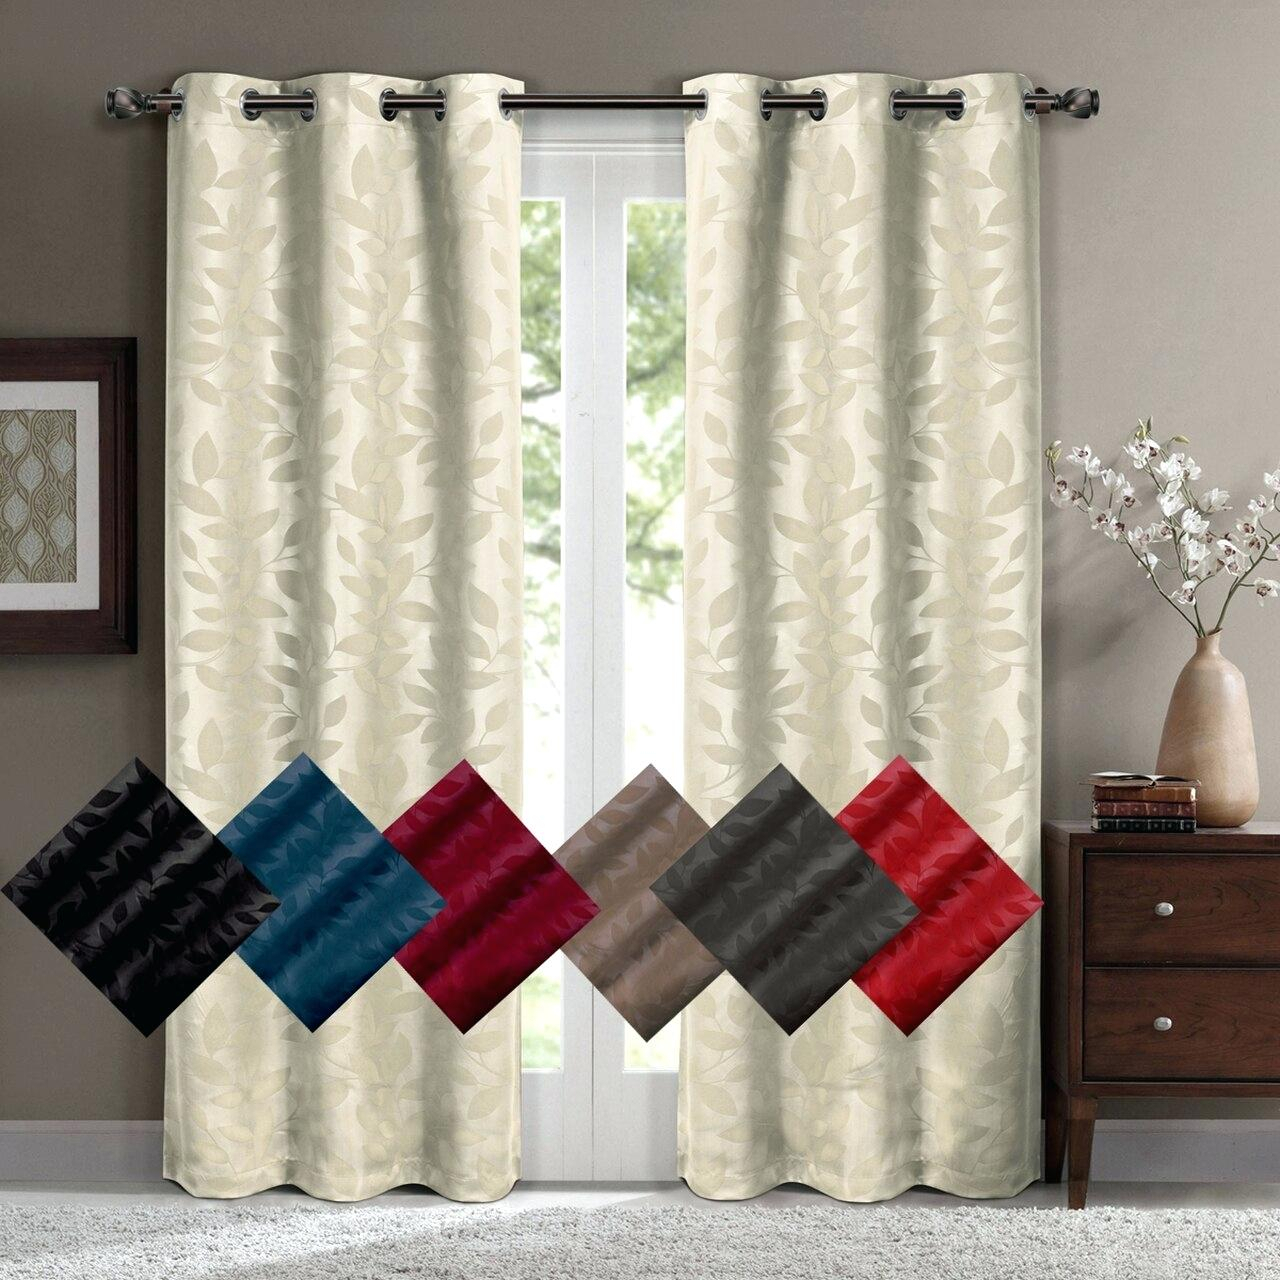 Amazing Grommet Drapery Panels Curtain On Sale Bed Bath With Regard To Geometric Print Textured Thermal Insulated Grommet Curtain Panels (View 17 of 20)